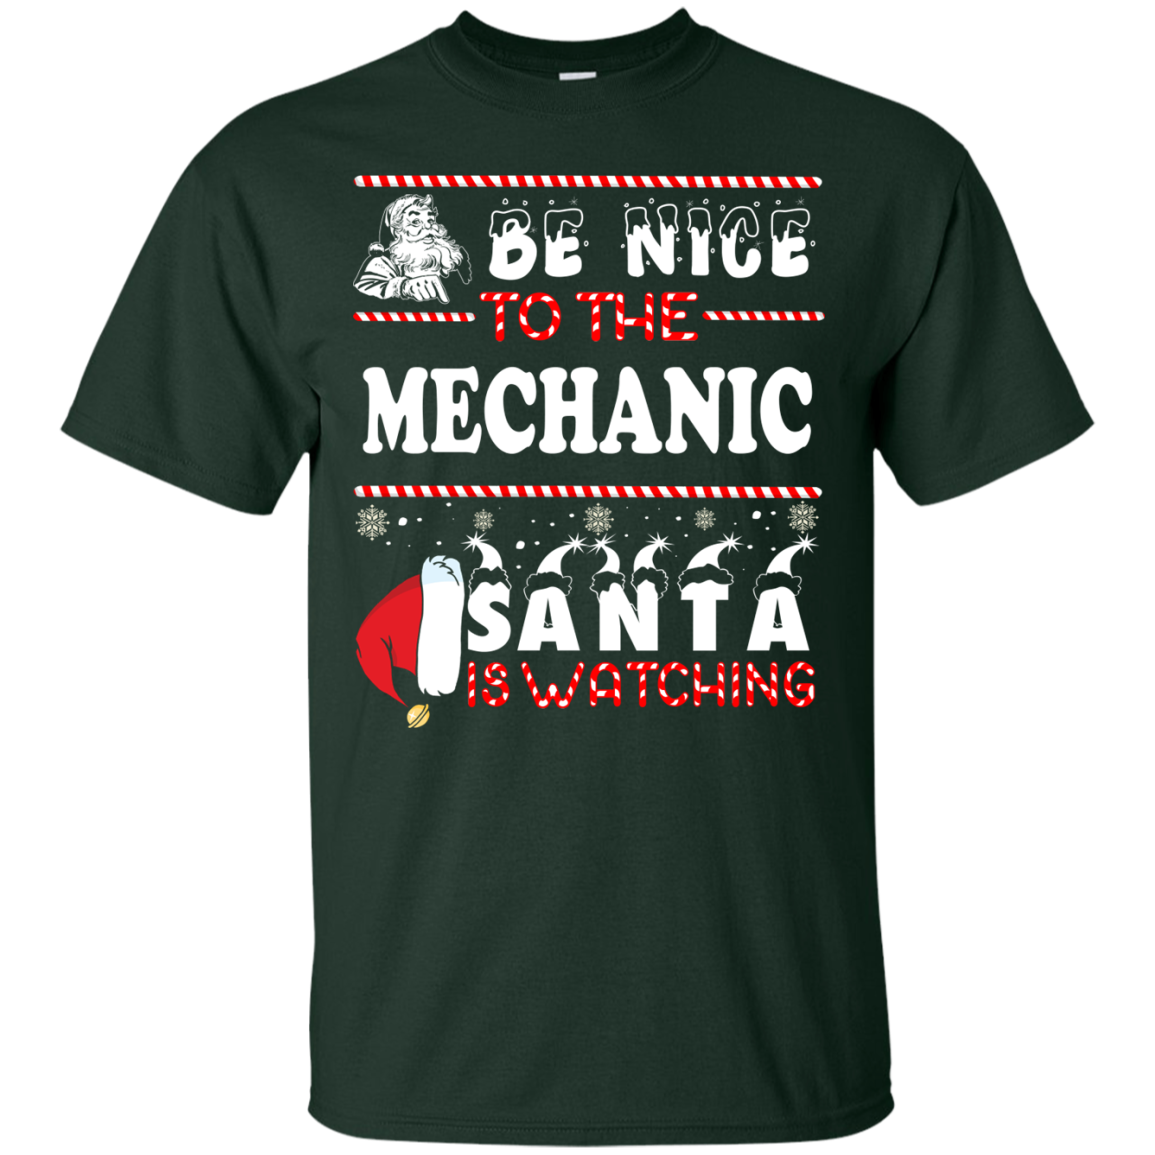 Be Nice To The Mechanic Santa Is Watching Sweatshirt, T Shirt